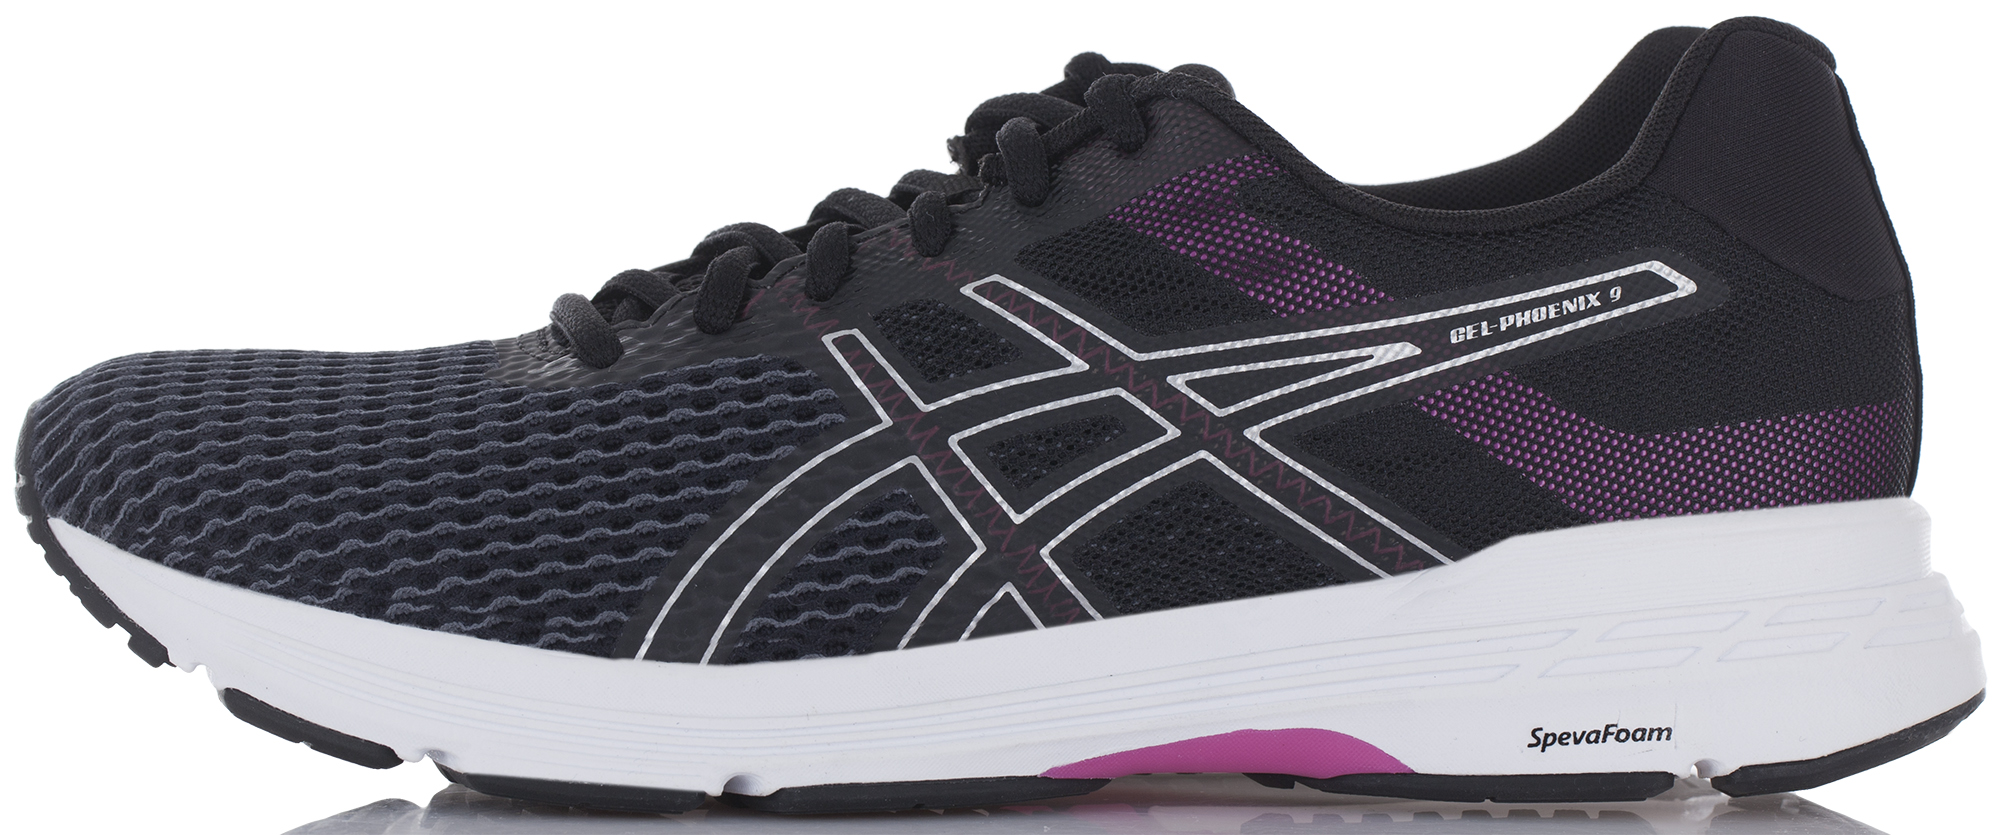 ASICS Кроссовки женские ASICS Gel-Phoenix 9 asics gel volley elite 2